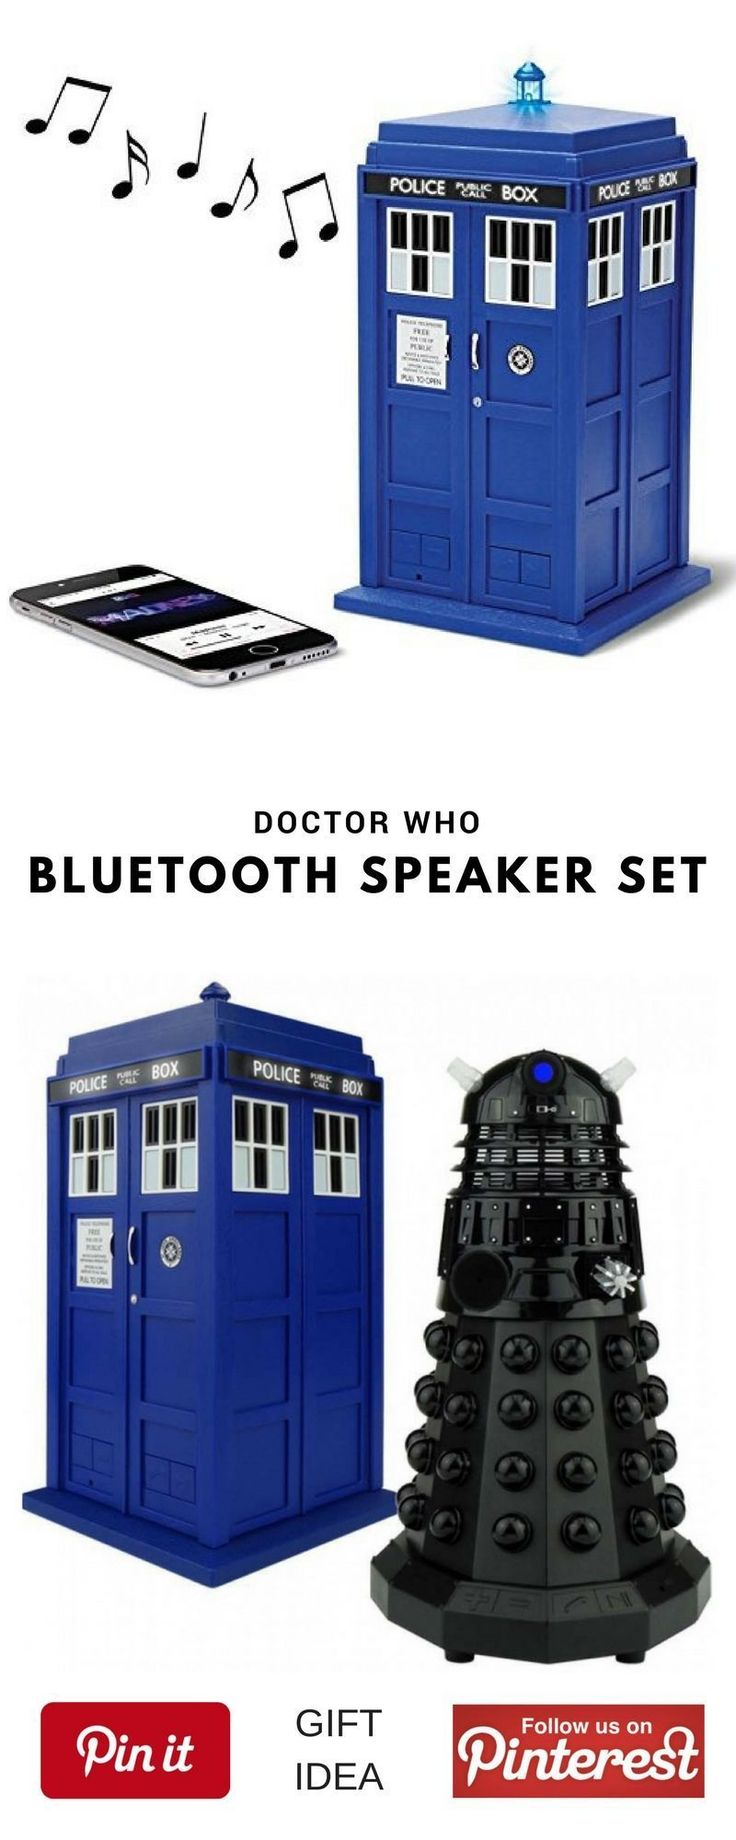 Doctor Who Bluetooth Speaker Set. This could be a great best gift for geek friend,  mother's or father's day, birthday for women or men, girls, boys and little kids, christmas, girlfriend, boyfriend, couples, valentine, bridesmaid, graduation, weeding, engagement and retirement. It's an inexpensive great meaning present and personalized for any funny guys anniversary. #geek #cheap #unique #weird #DIY #unusual #homemade #online #coolideas #shop #her #him #Starwars #doctorwho Are you looking